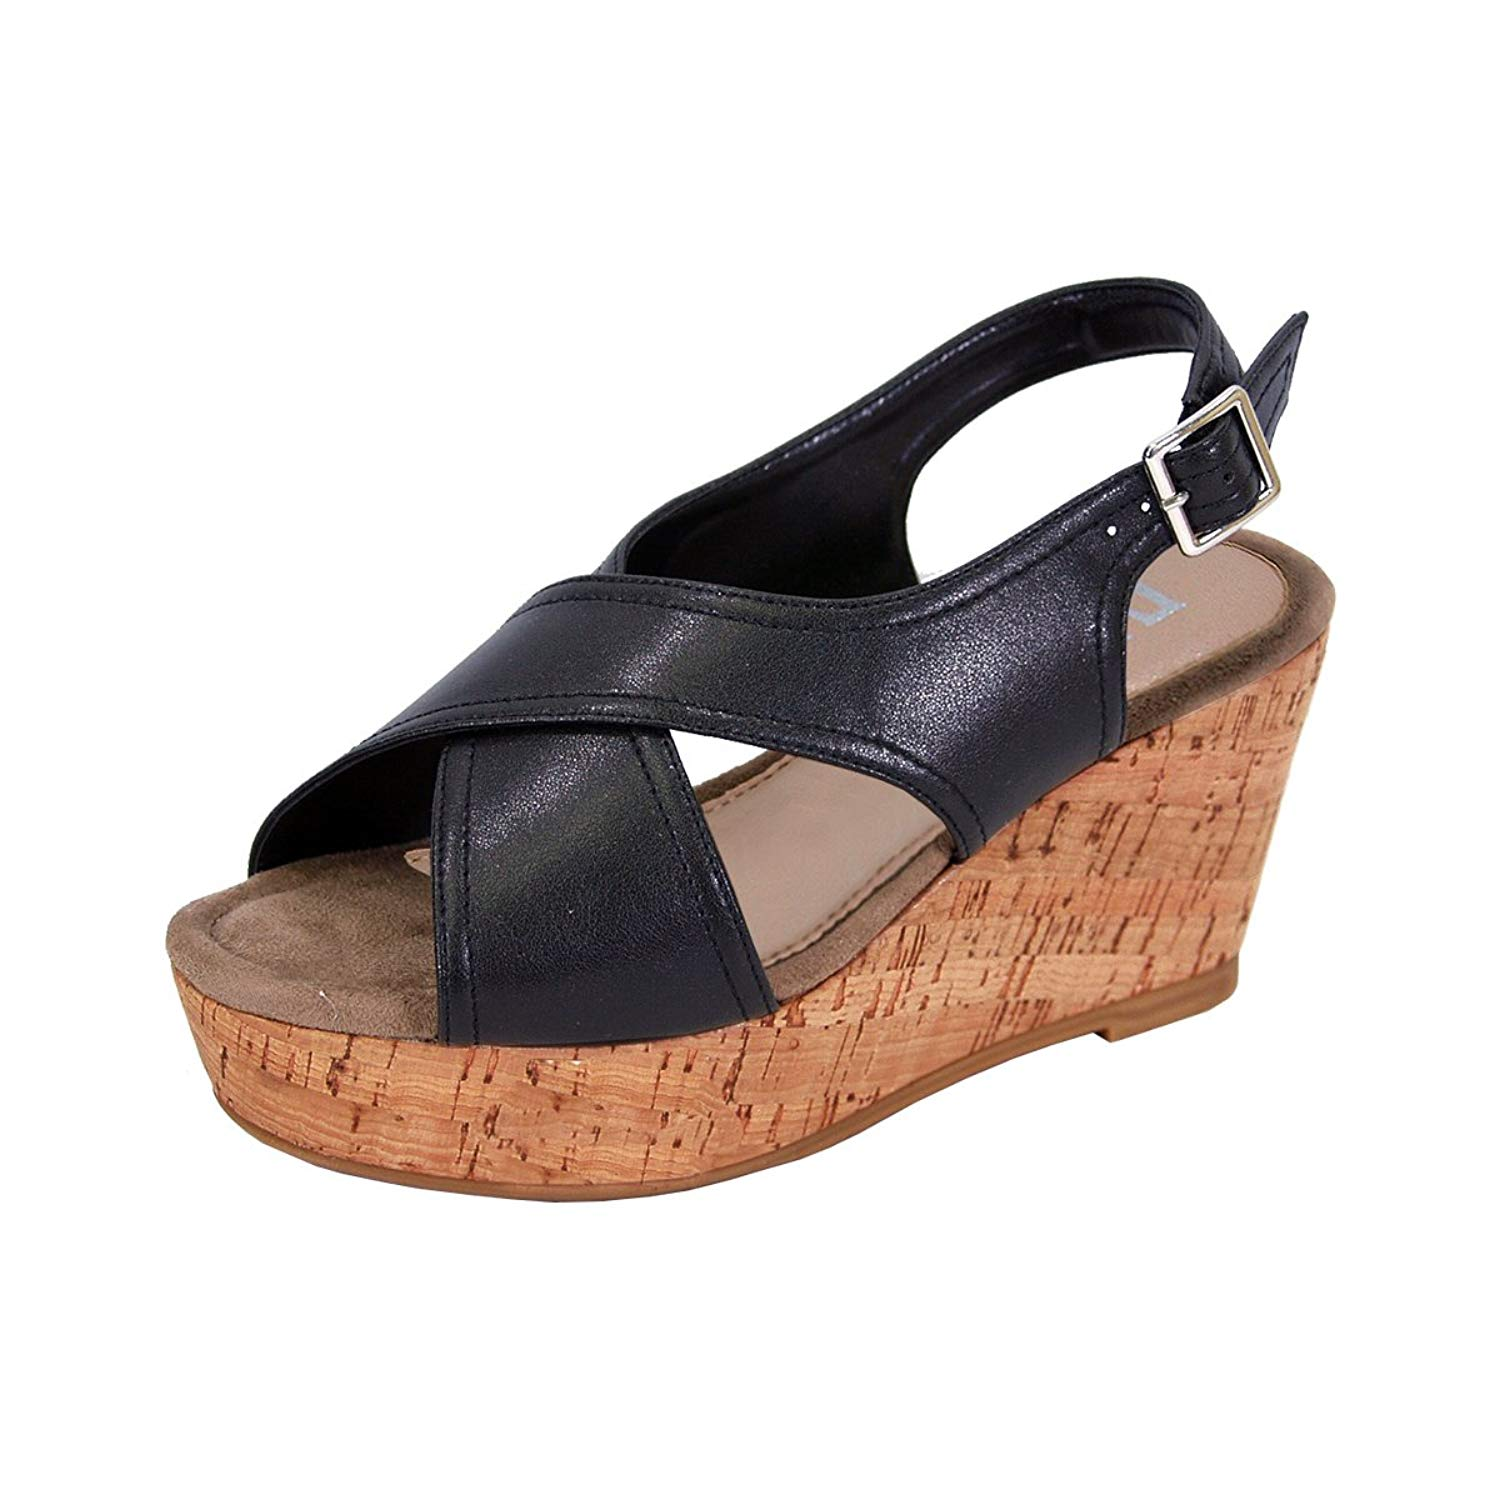 676e357c2d4 Get Quotations · Fuzzy Anya Women Wide Width Platform Wedge Slingback  Sandals (Size   Measurements Charts Available)